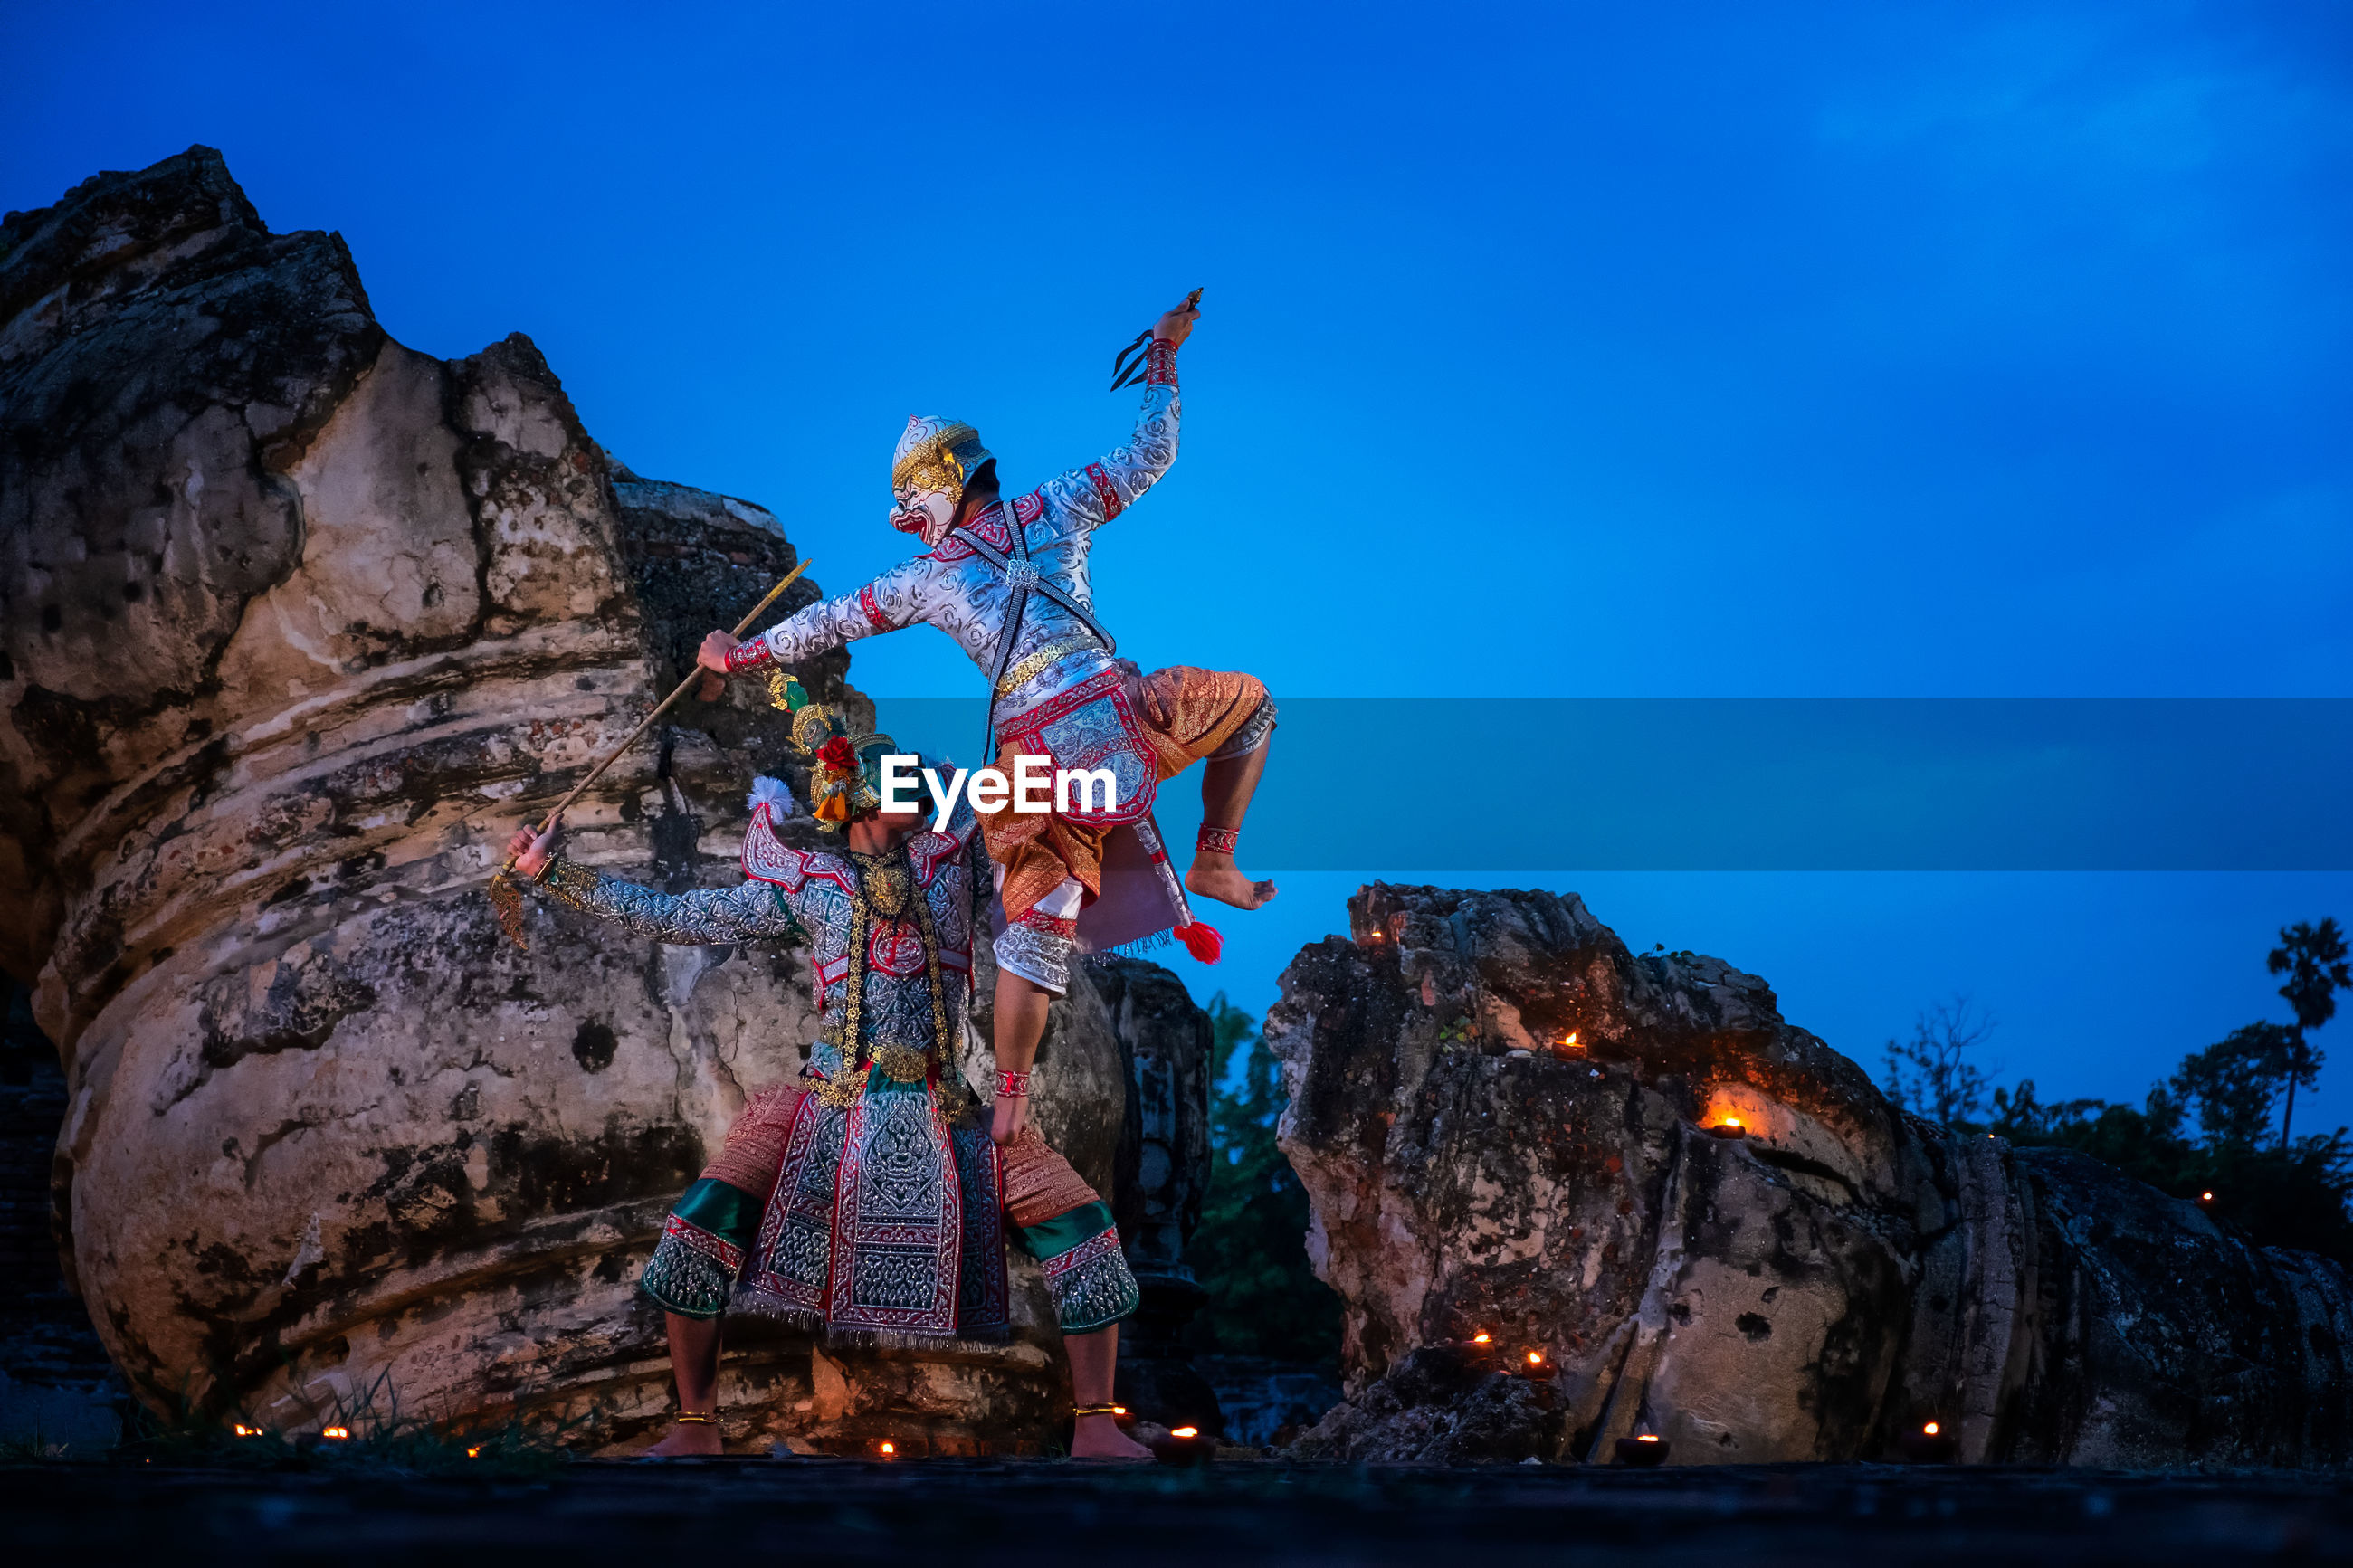 People in traditional clothing performing on rock formation against blue sky at dusk